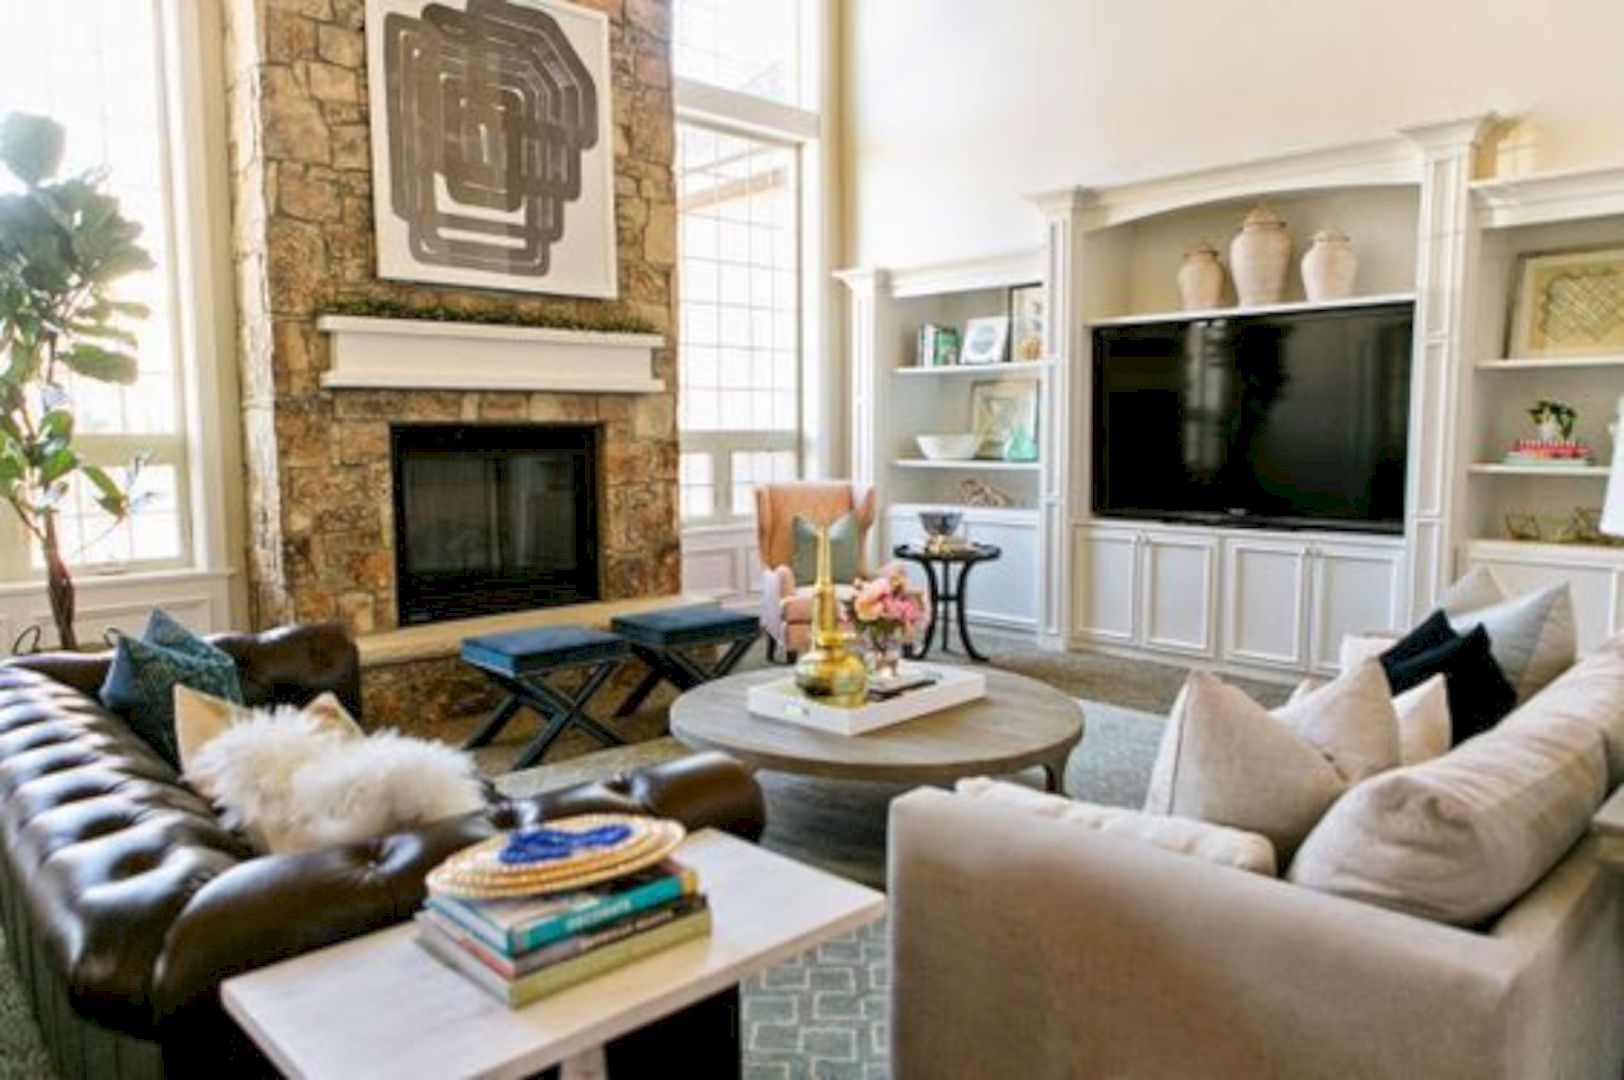 15 amazing furniture layout ideas to arrange your family on family picture wall ideas for living room furniture arrangements id=15124